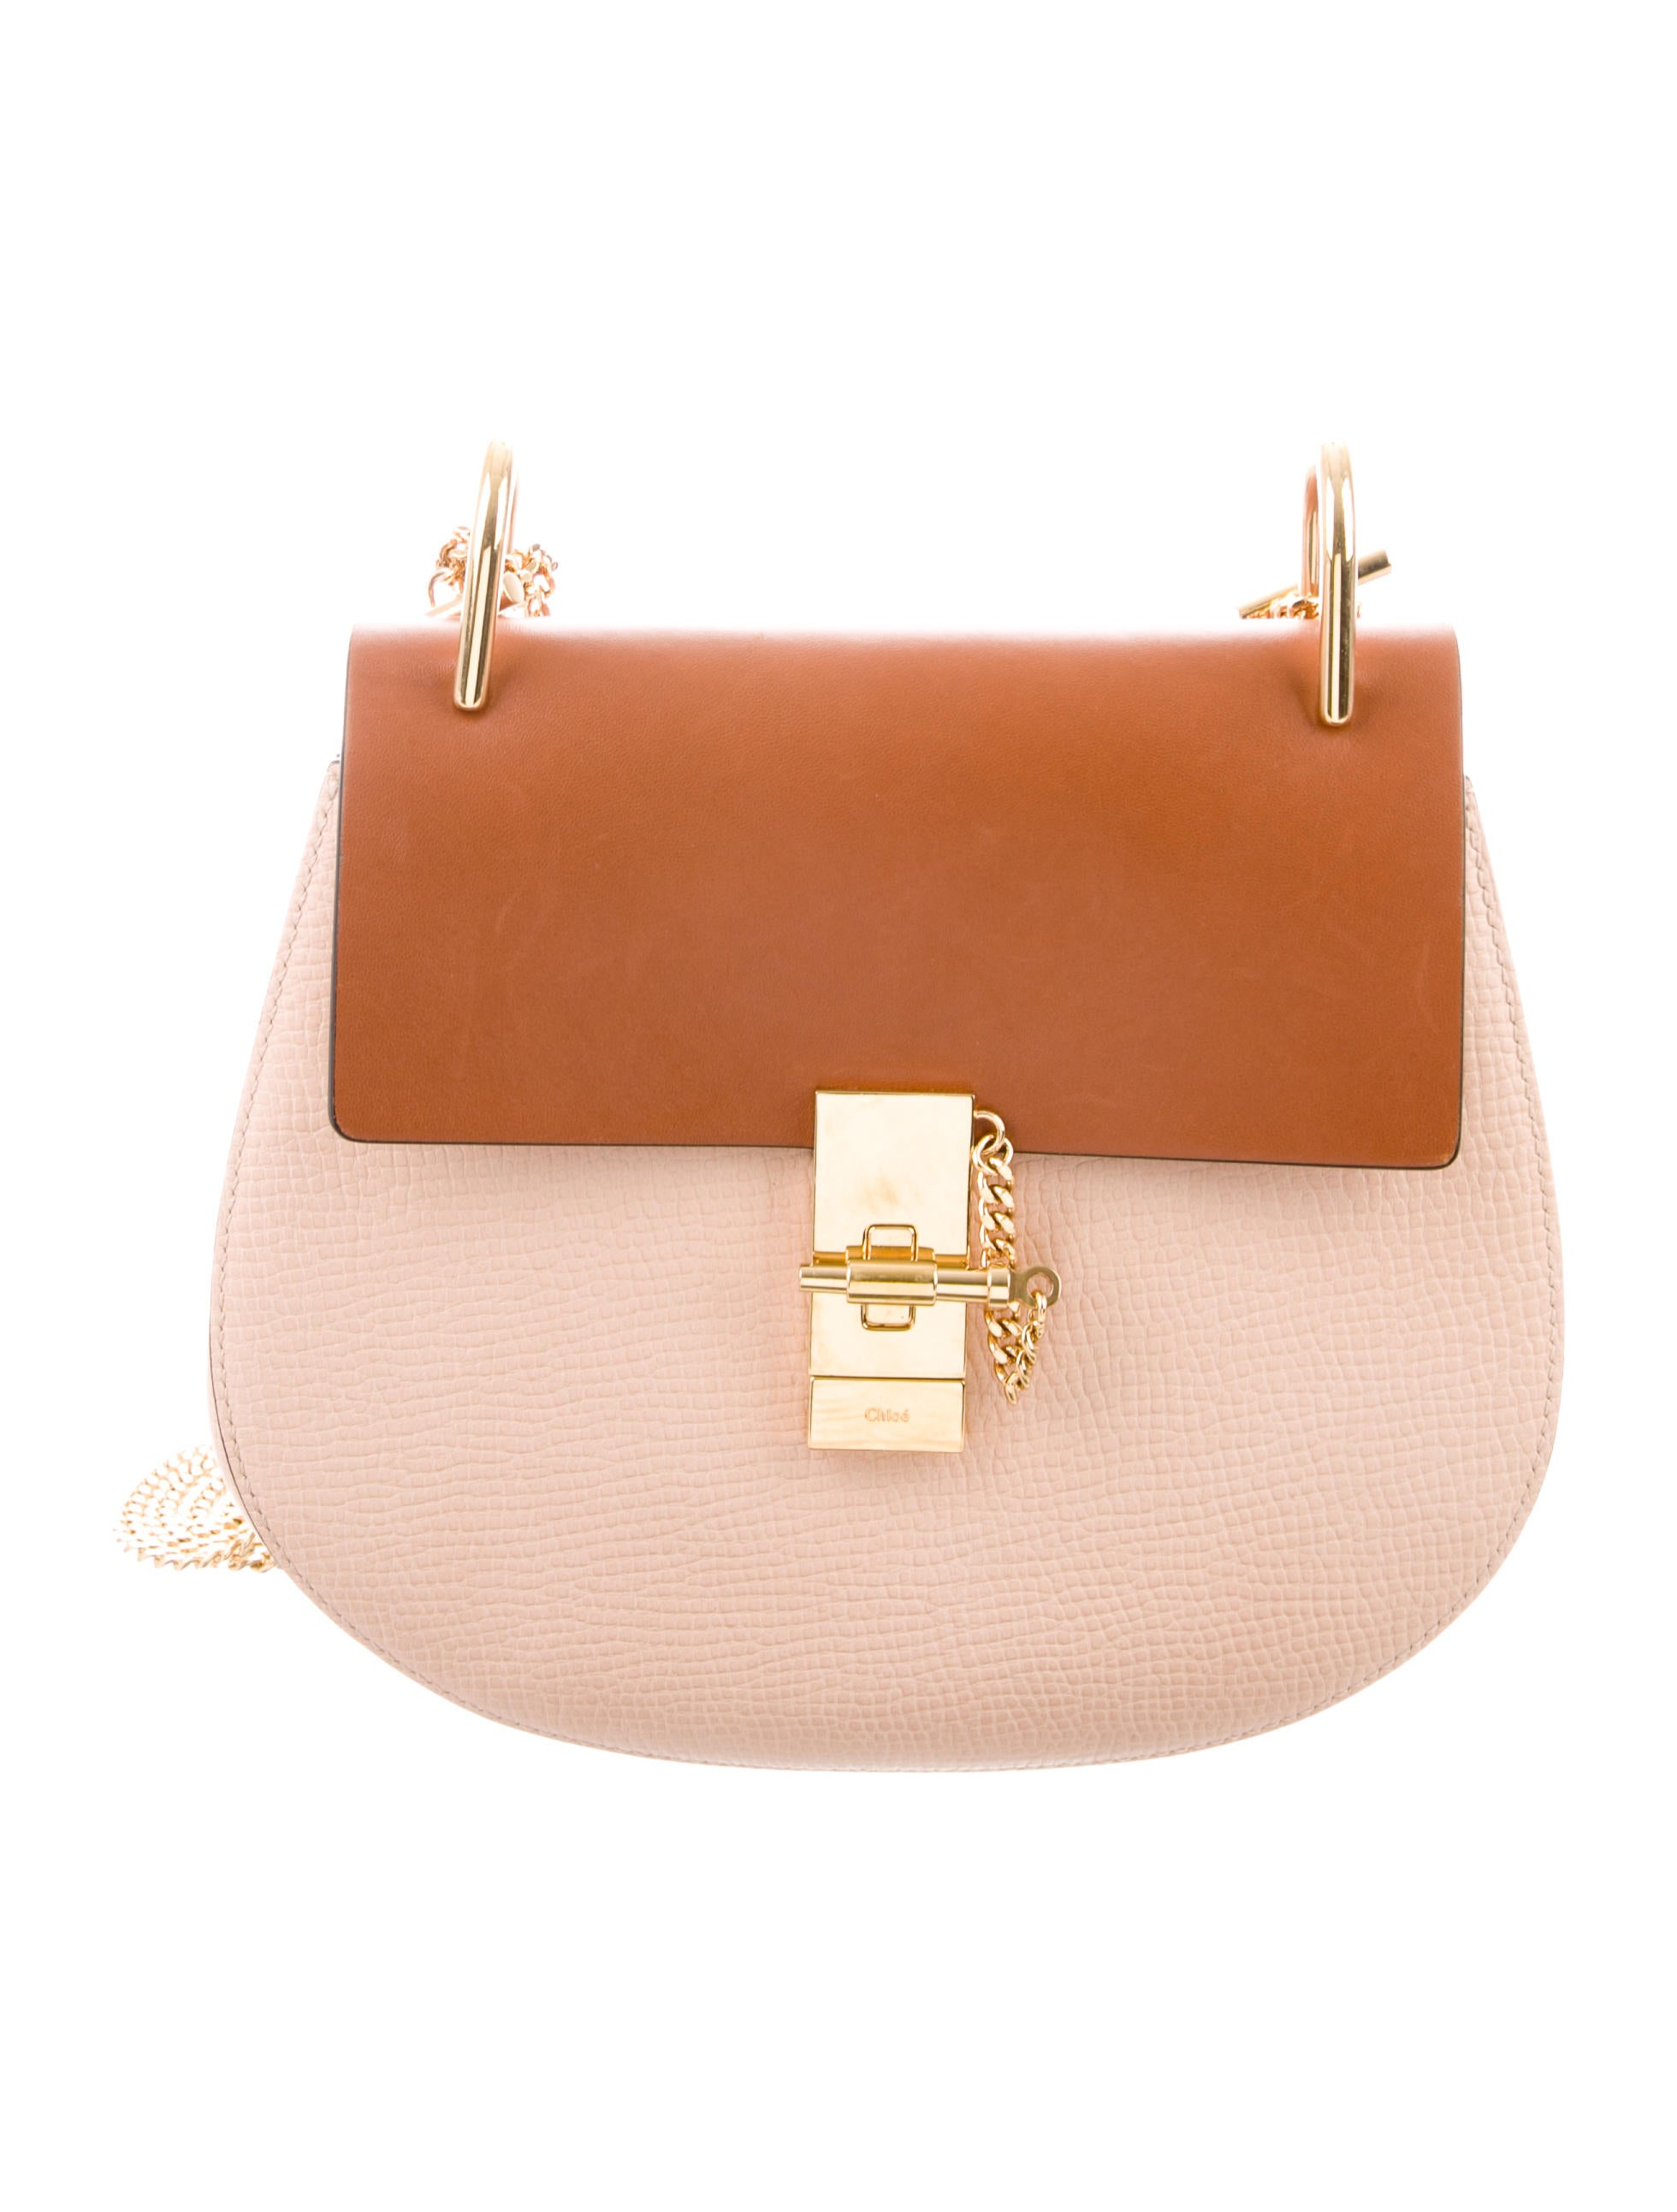 2879e79b855 Chloé Medium Drew Bag - Handbags - CHL97517 | The RealReal